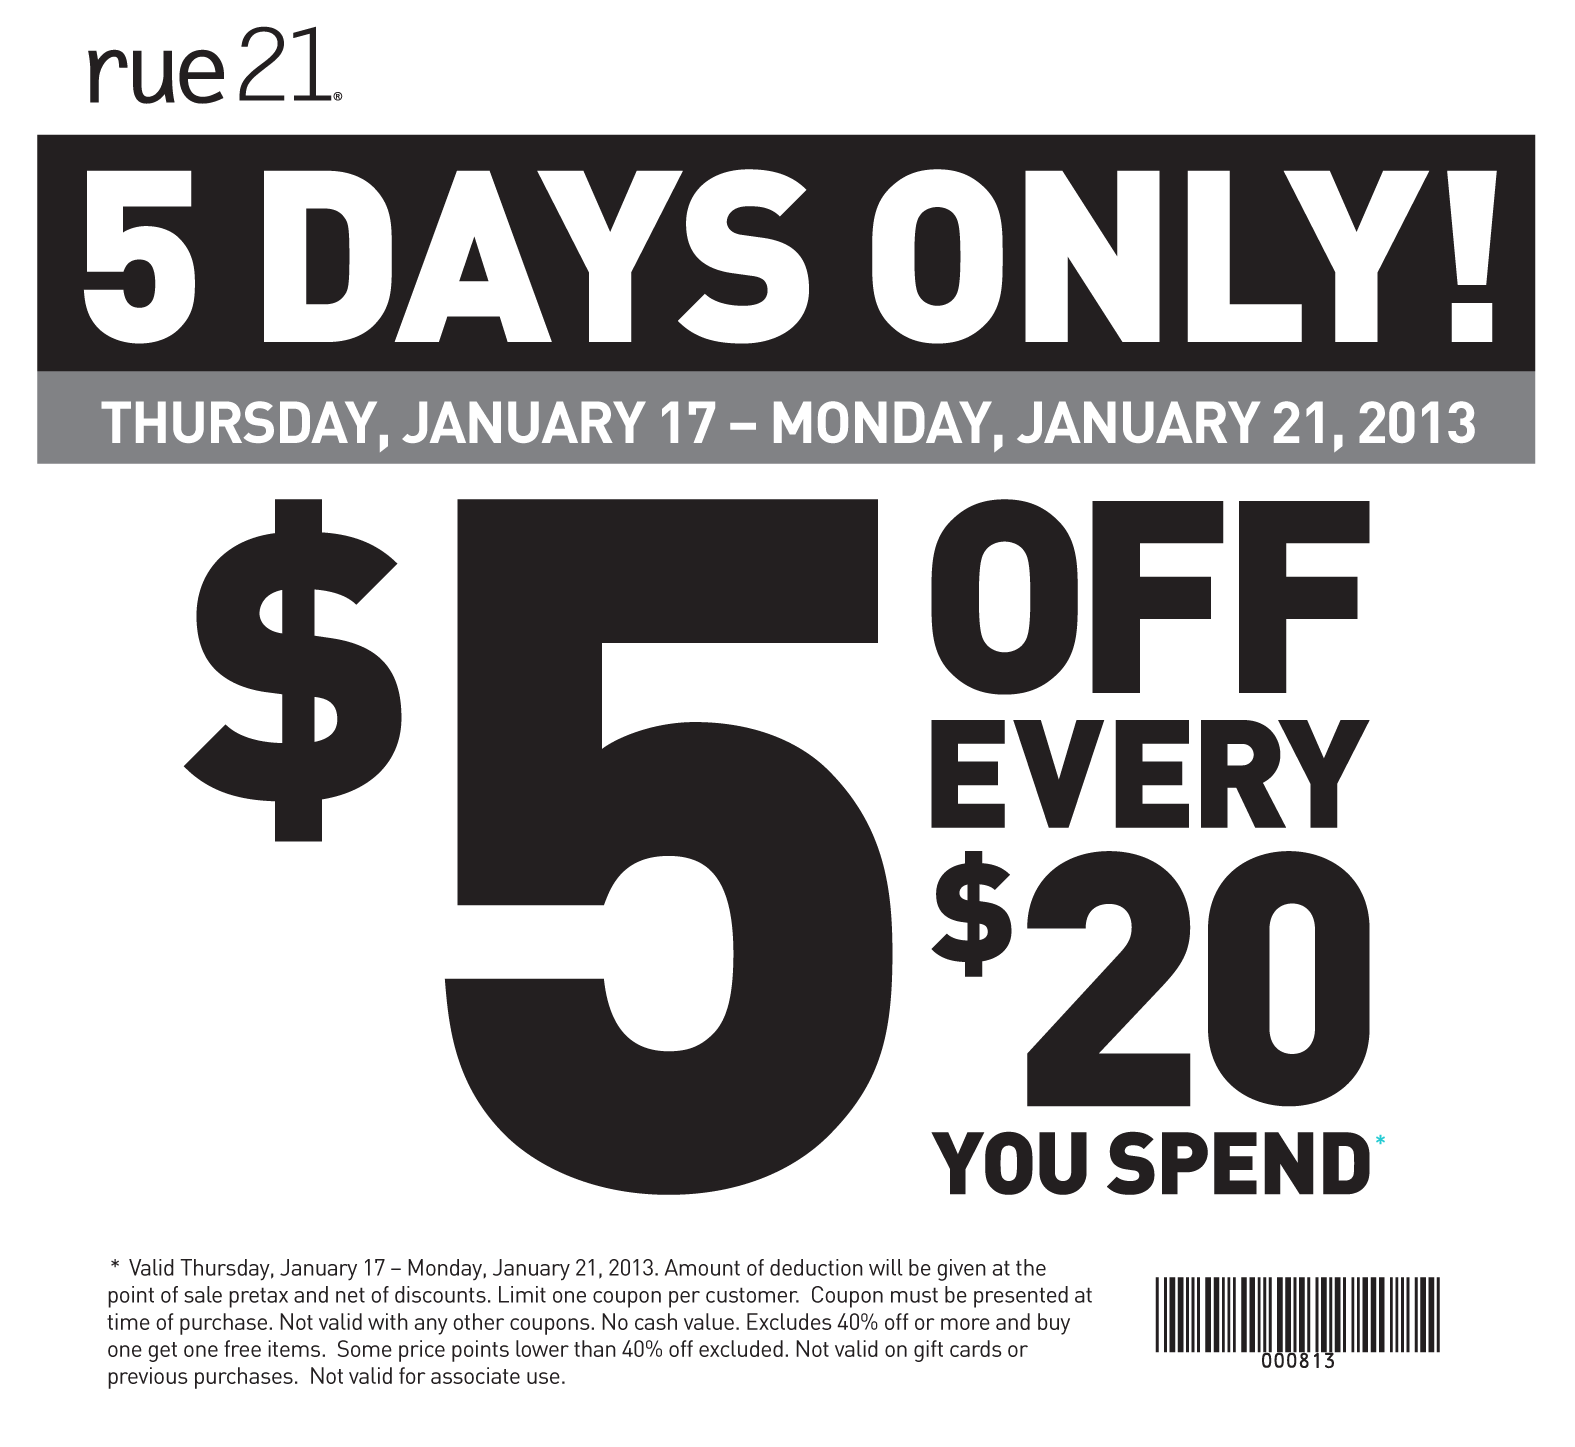 picture about Rue 21 Coupon Printable called rue21 $5 OFF Clothes Printable Coupon Print Coupon King